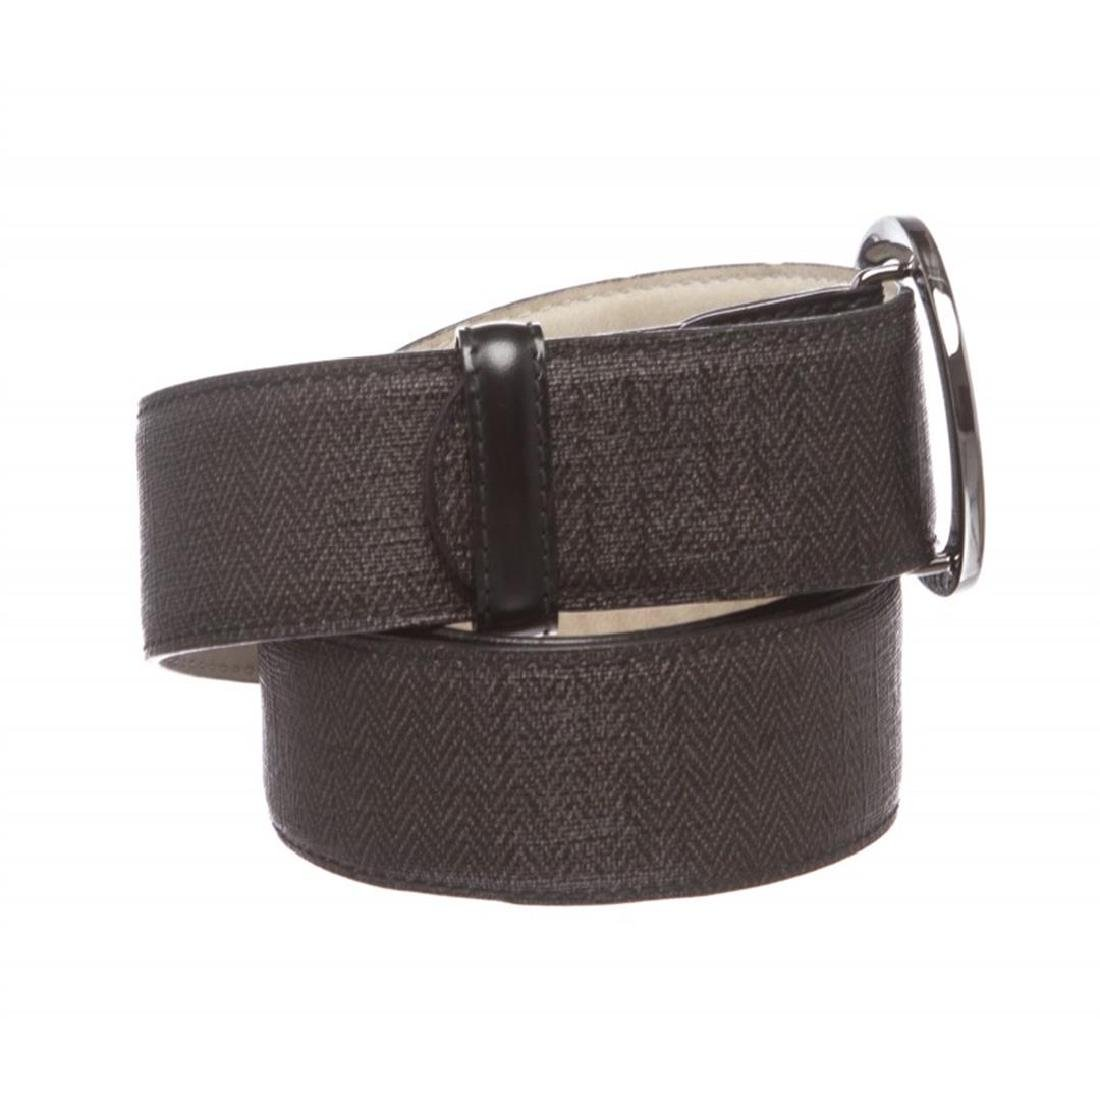 Bvlgari Black Gray Coated Canvas Leather Belt - 2